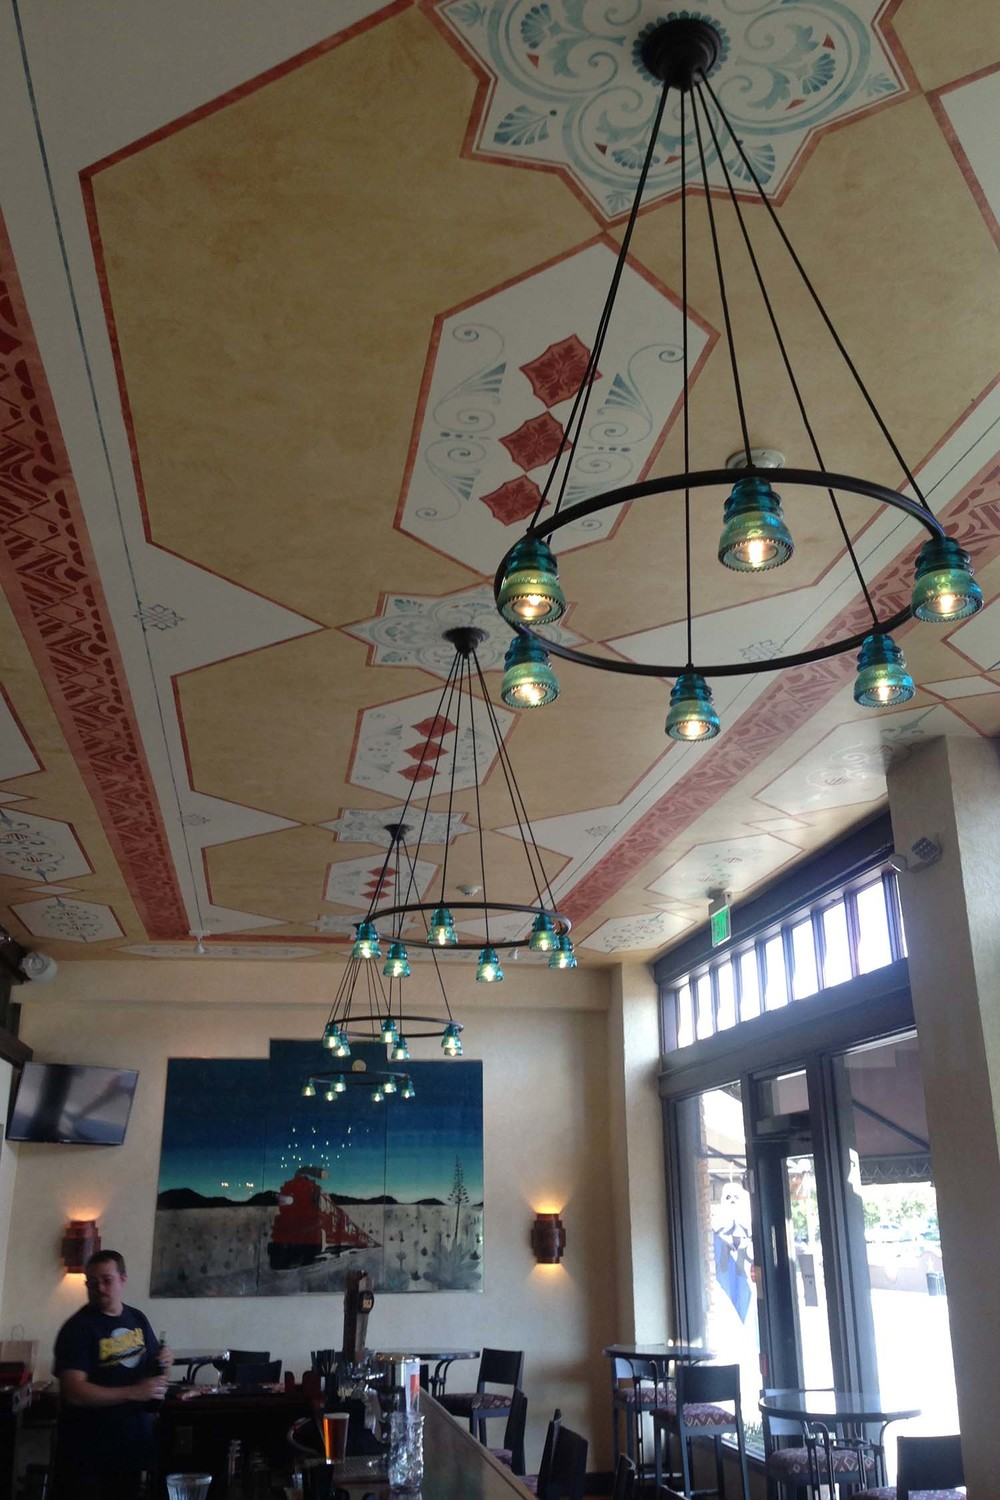 Painted Ceiling / Commercial Space